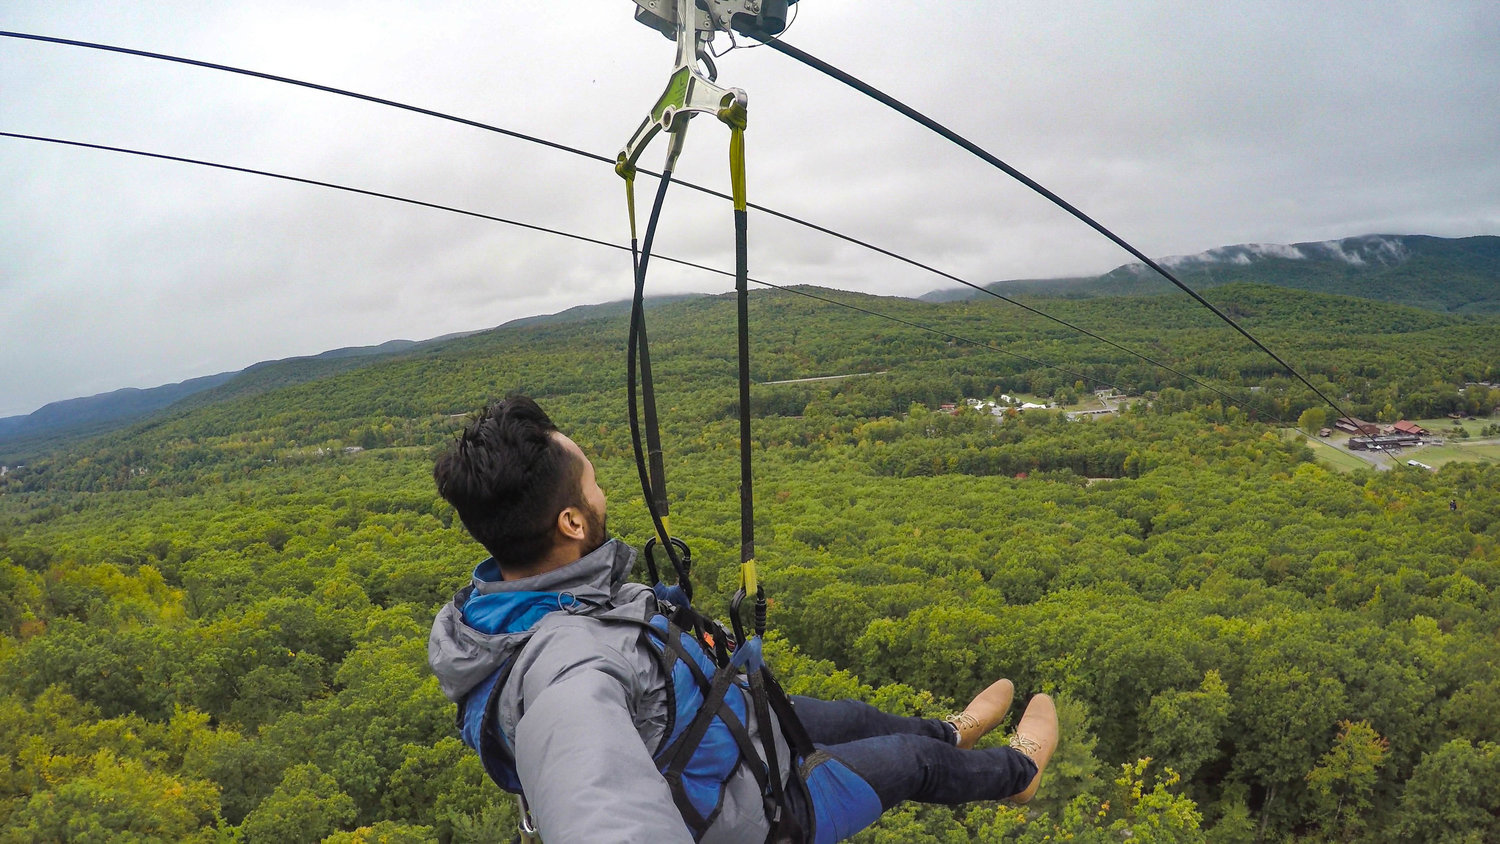 NOW YOU CAN ZIP-LINE OFF A MOUNTAIN